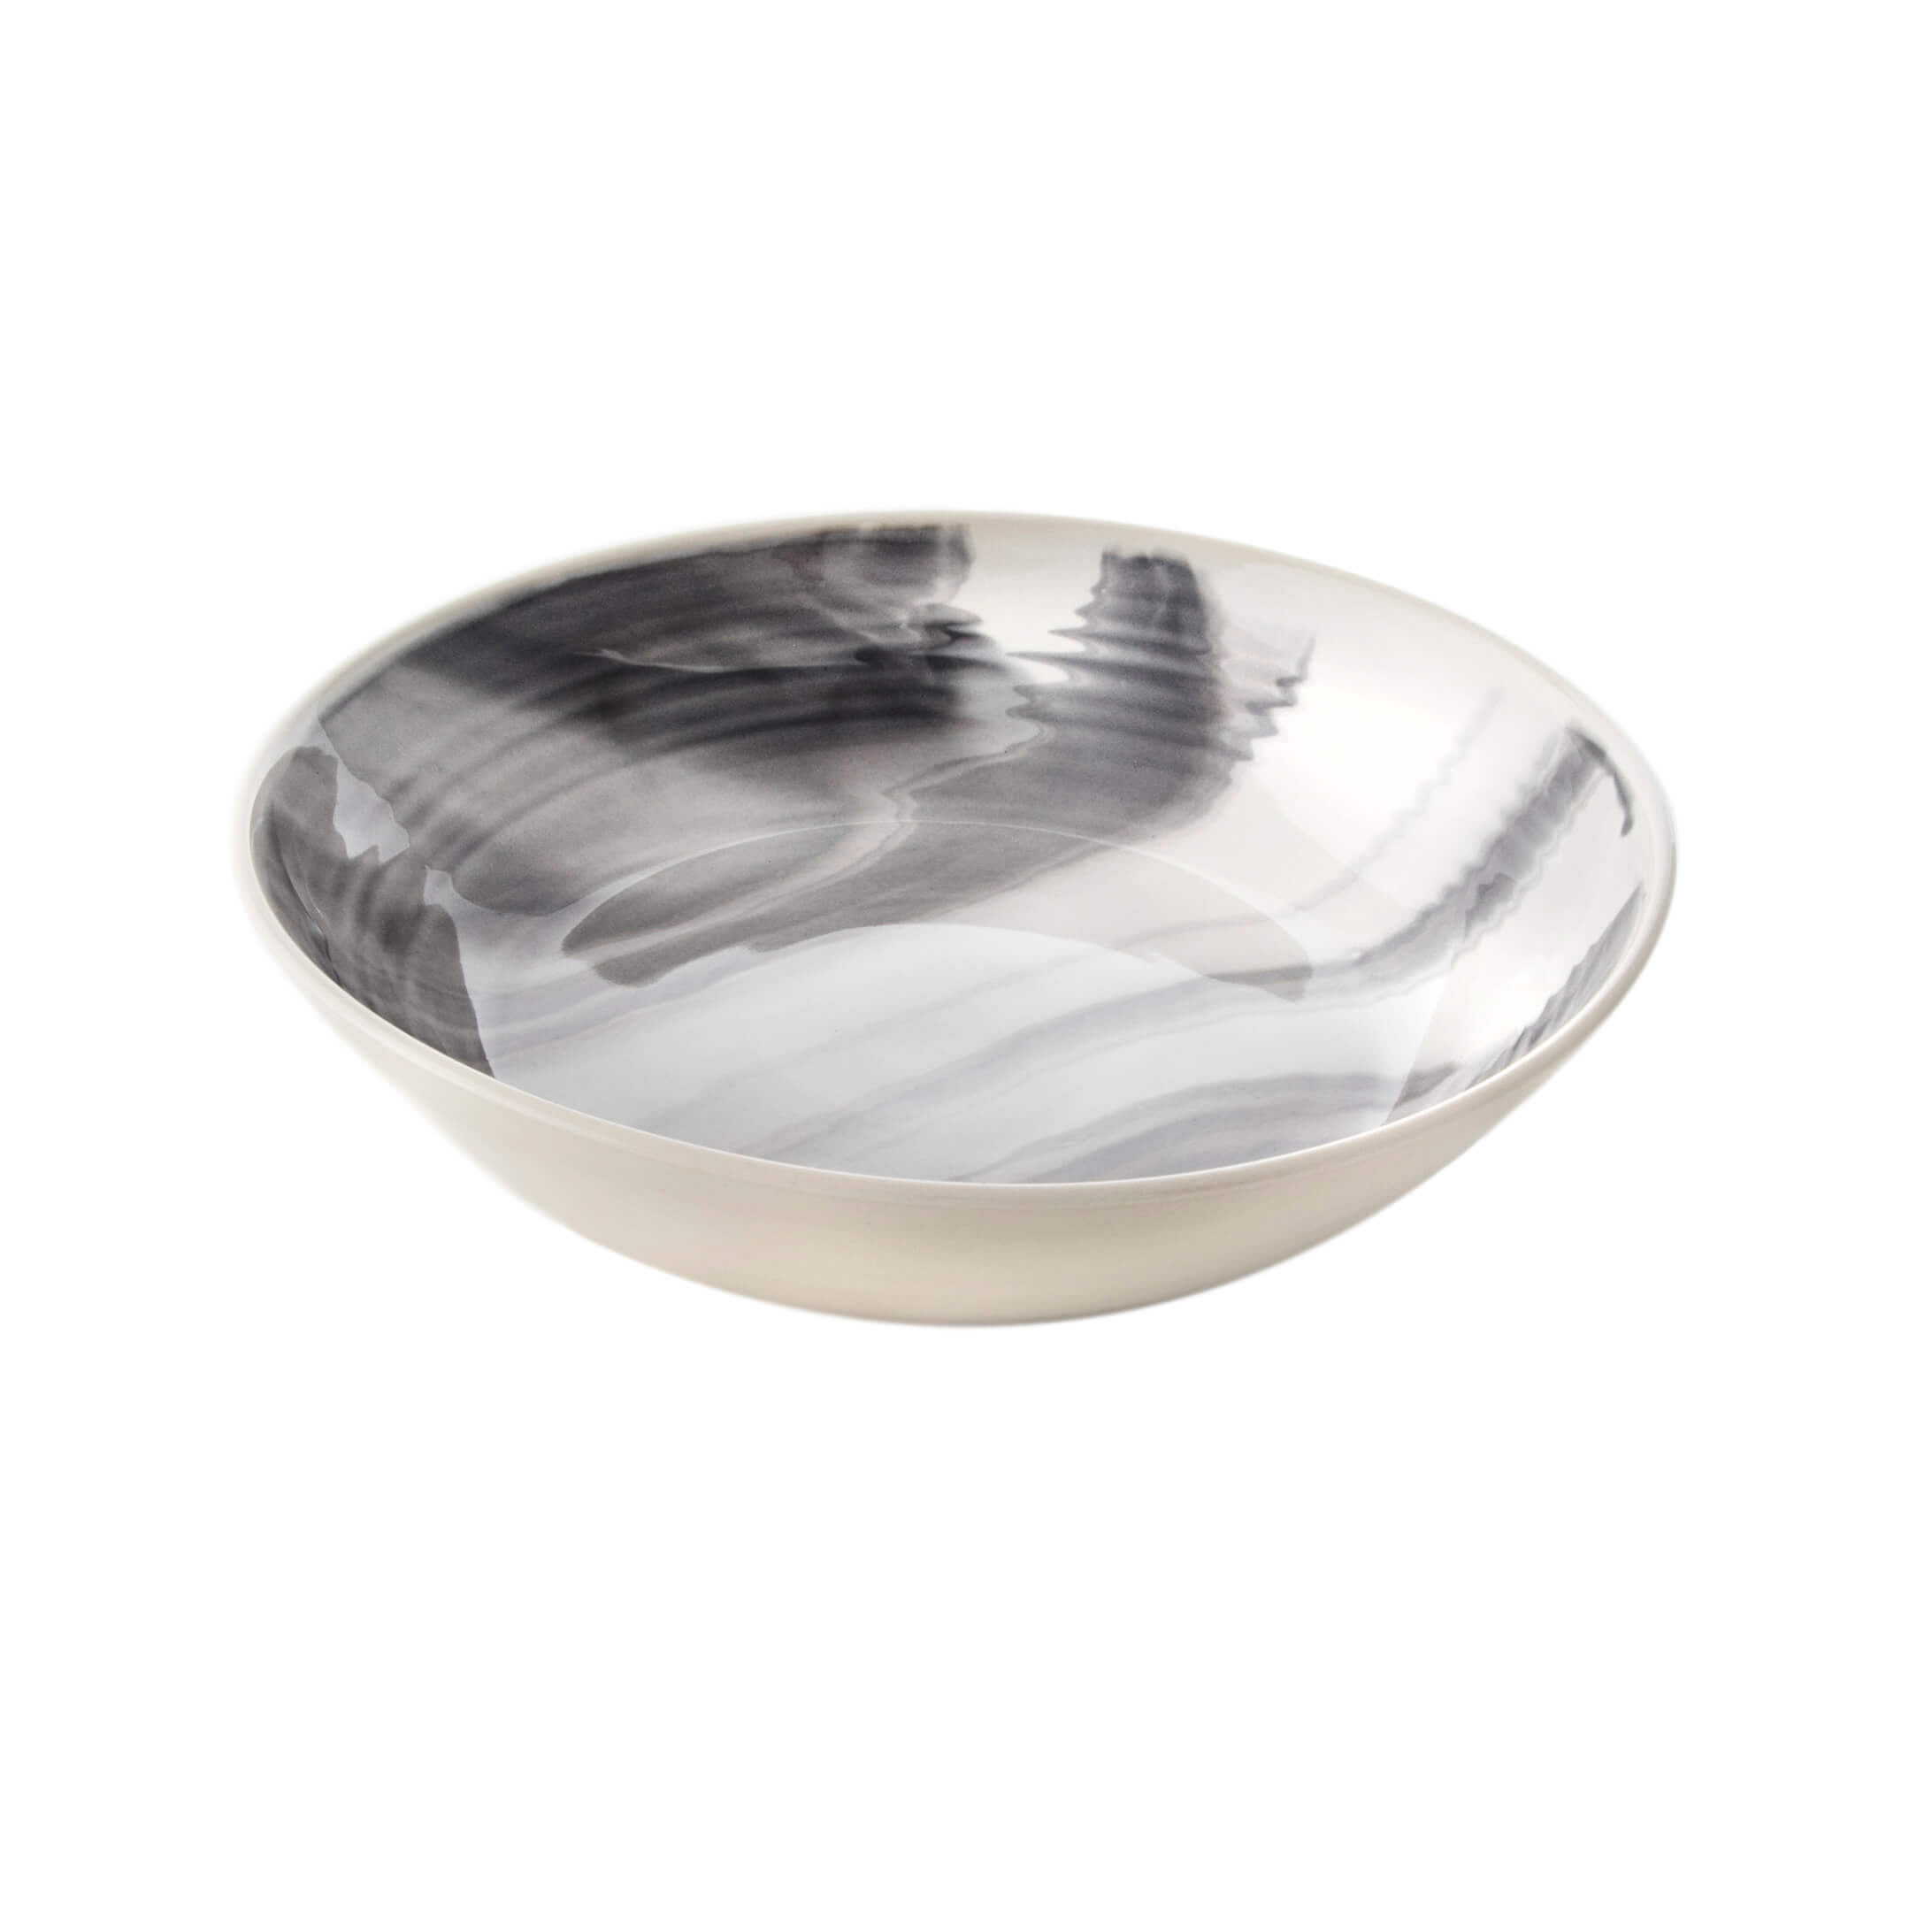 The Marble Stratus Gray Serving Bowl